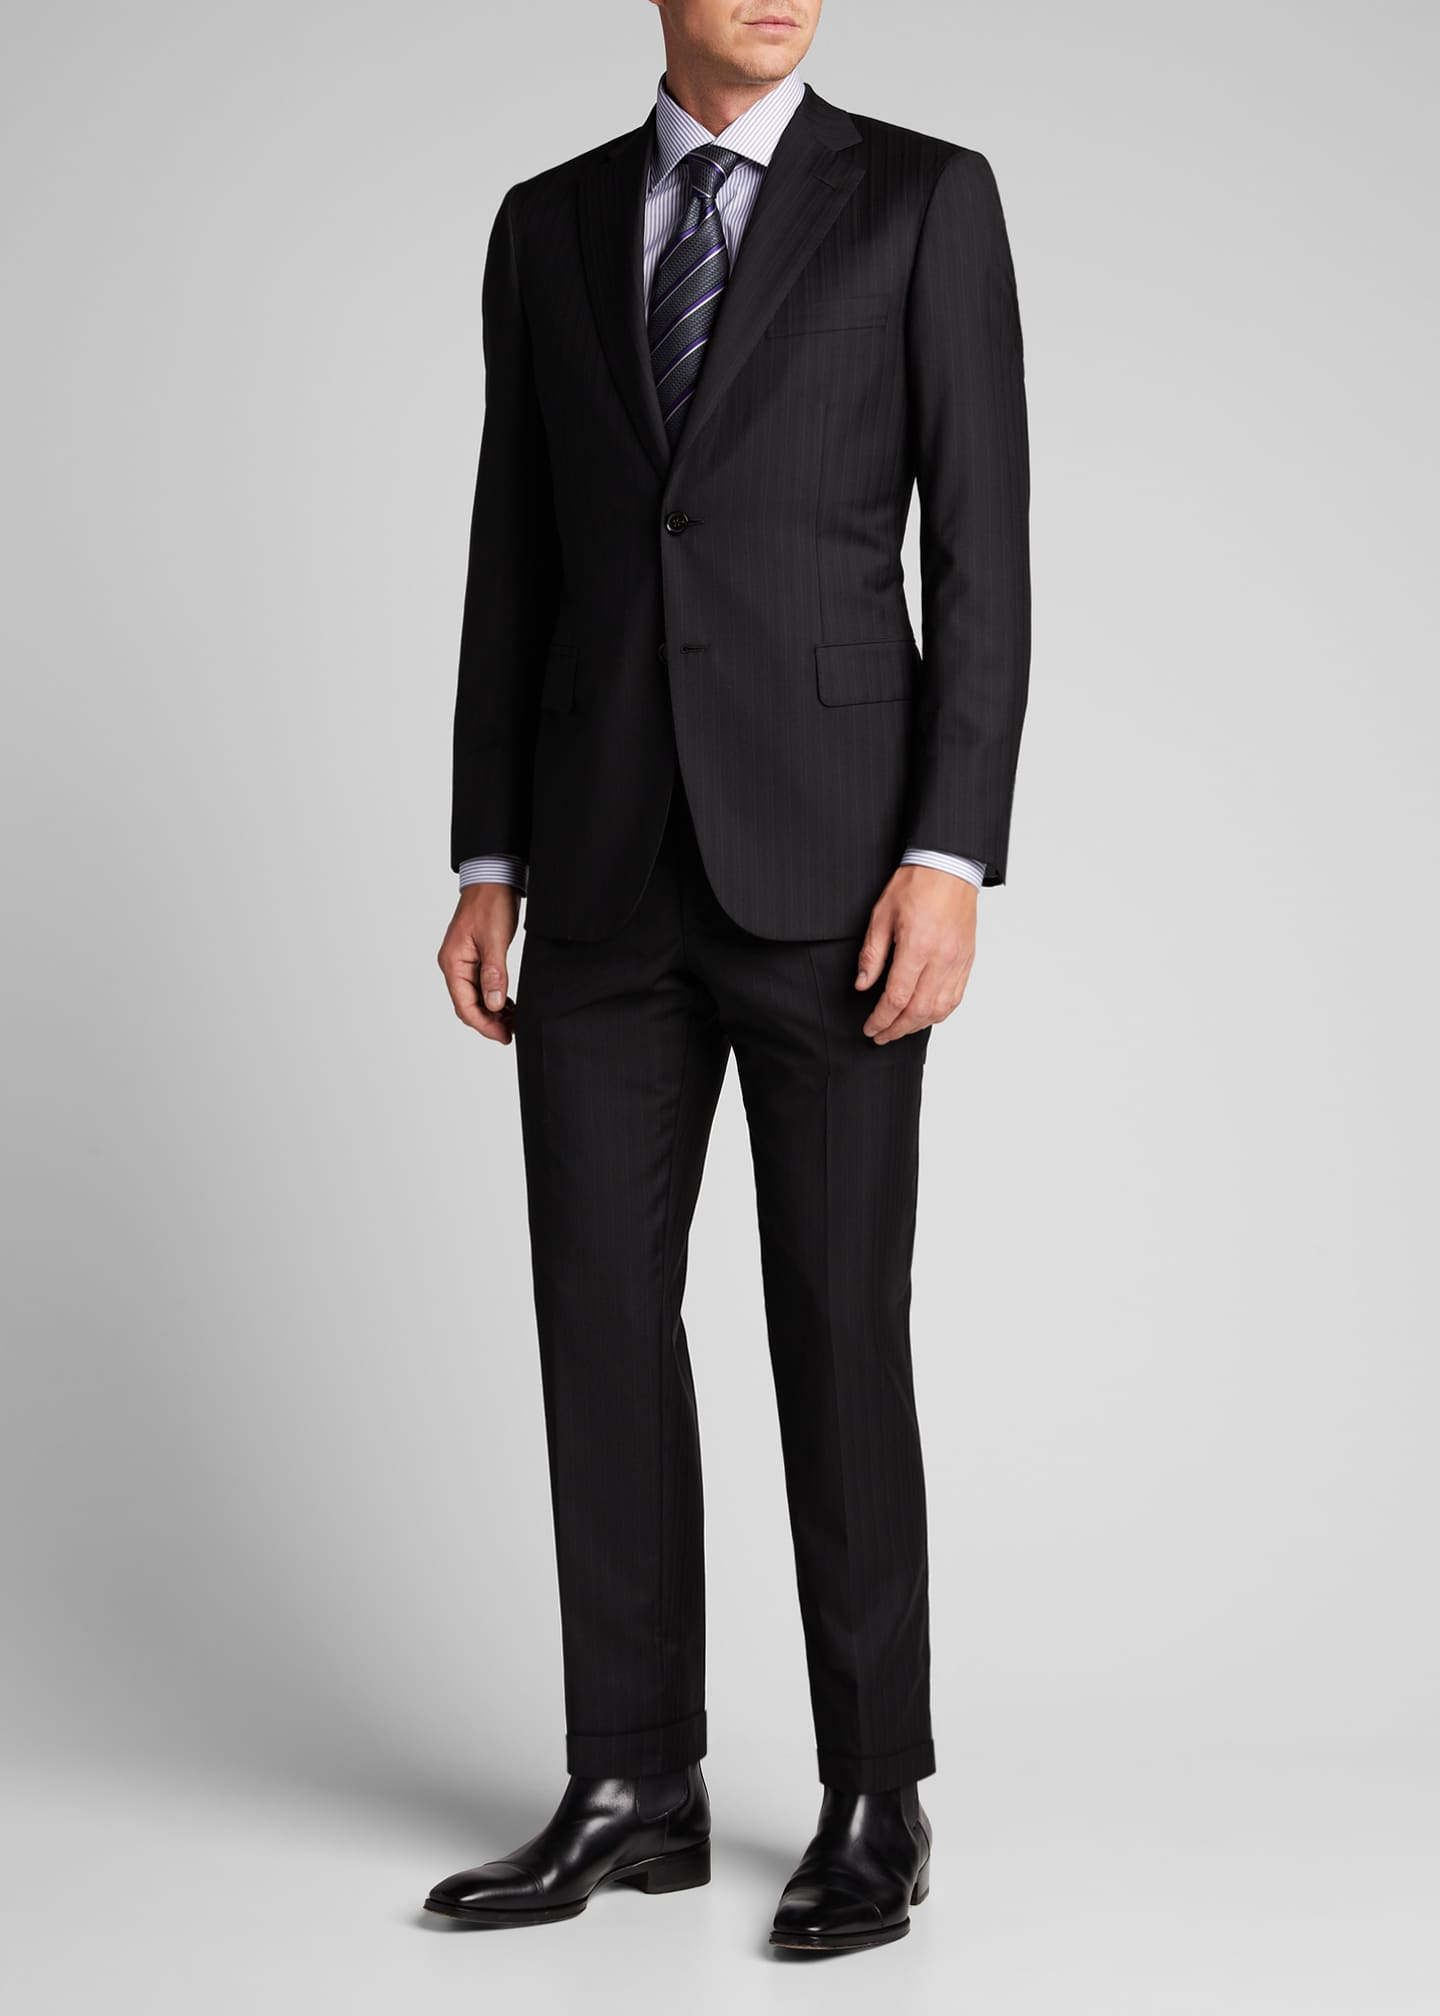 Brioni Men's Tonal Striped Two-Piece Suit